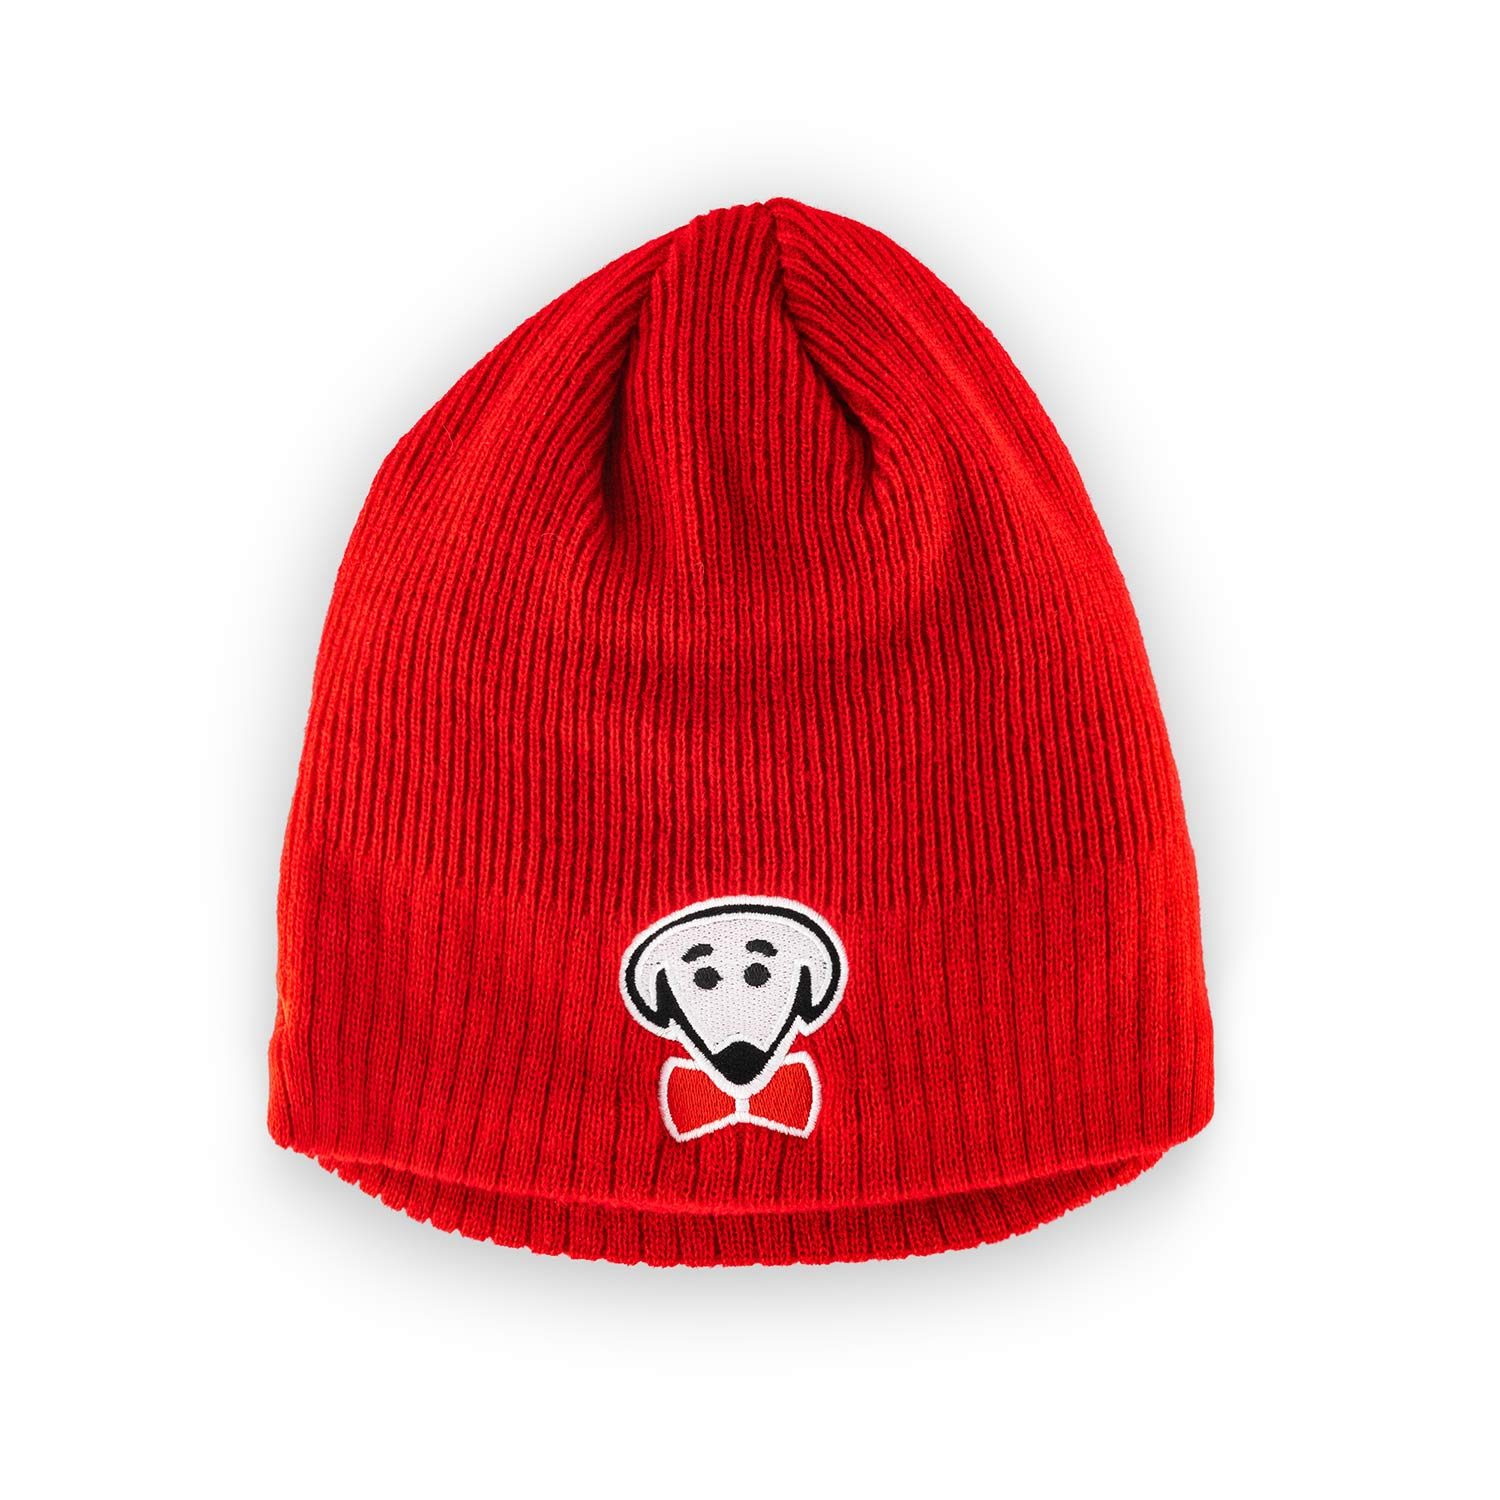 Taylor winter knit hat in red by Beau Tyler